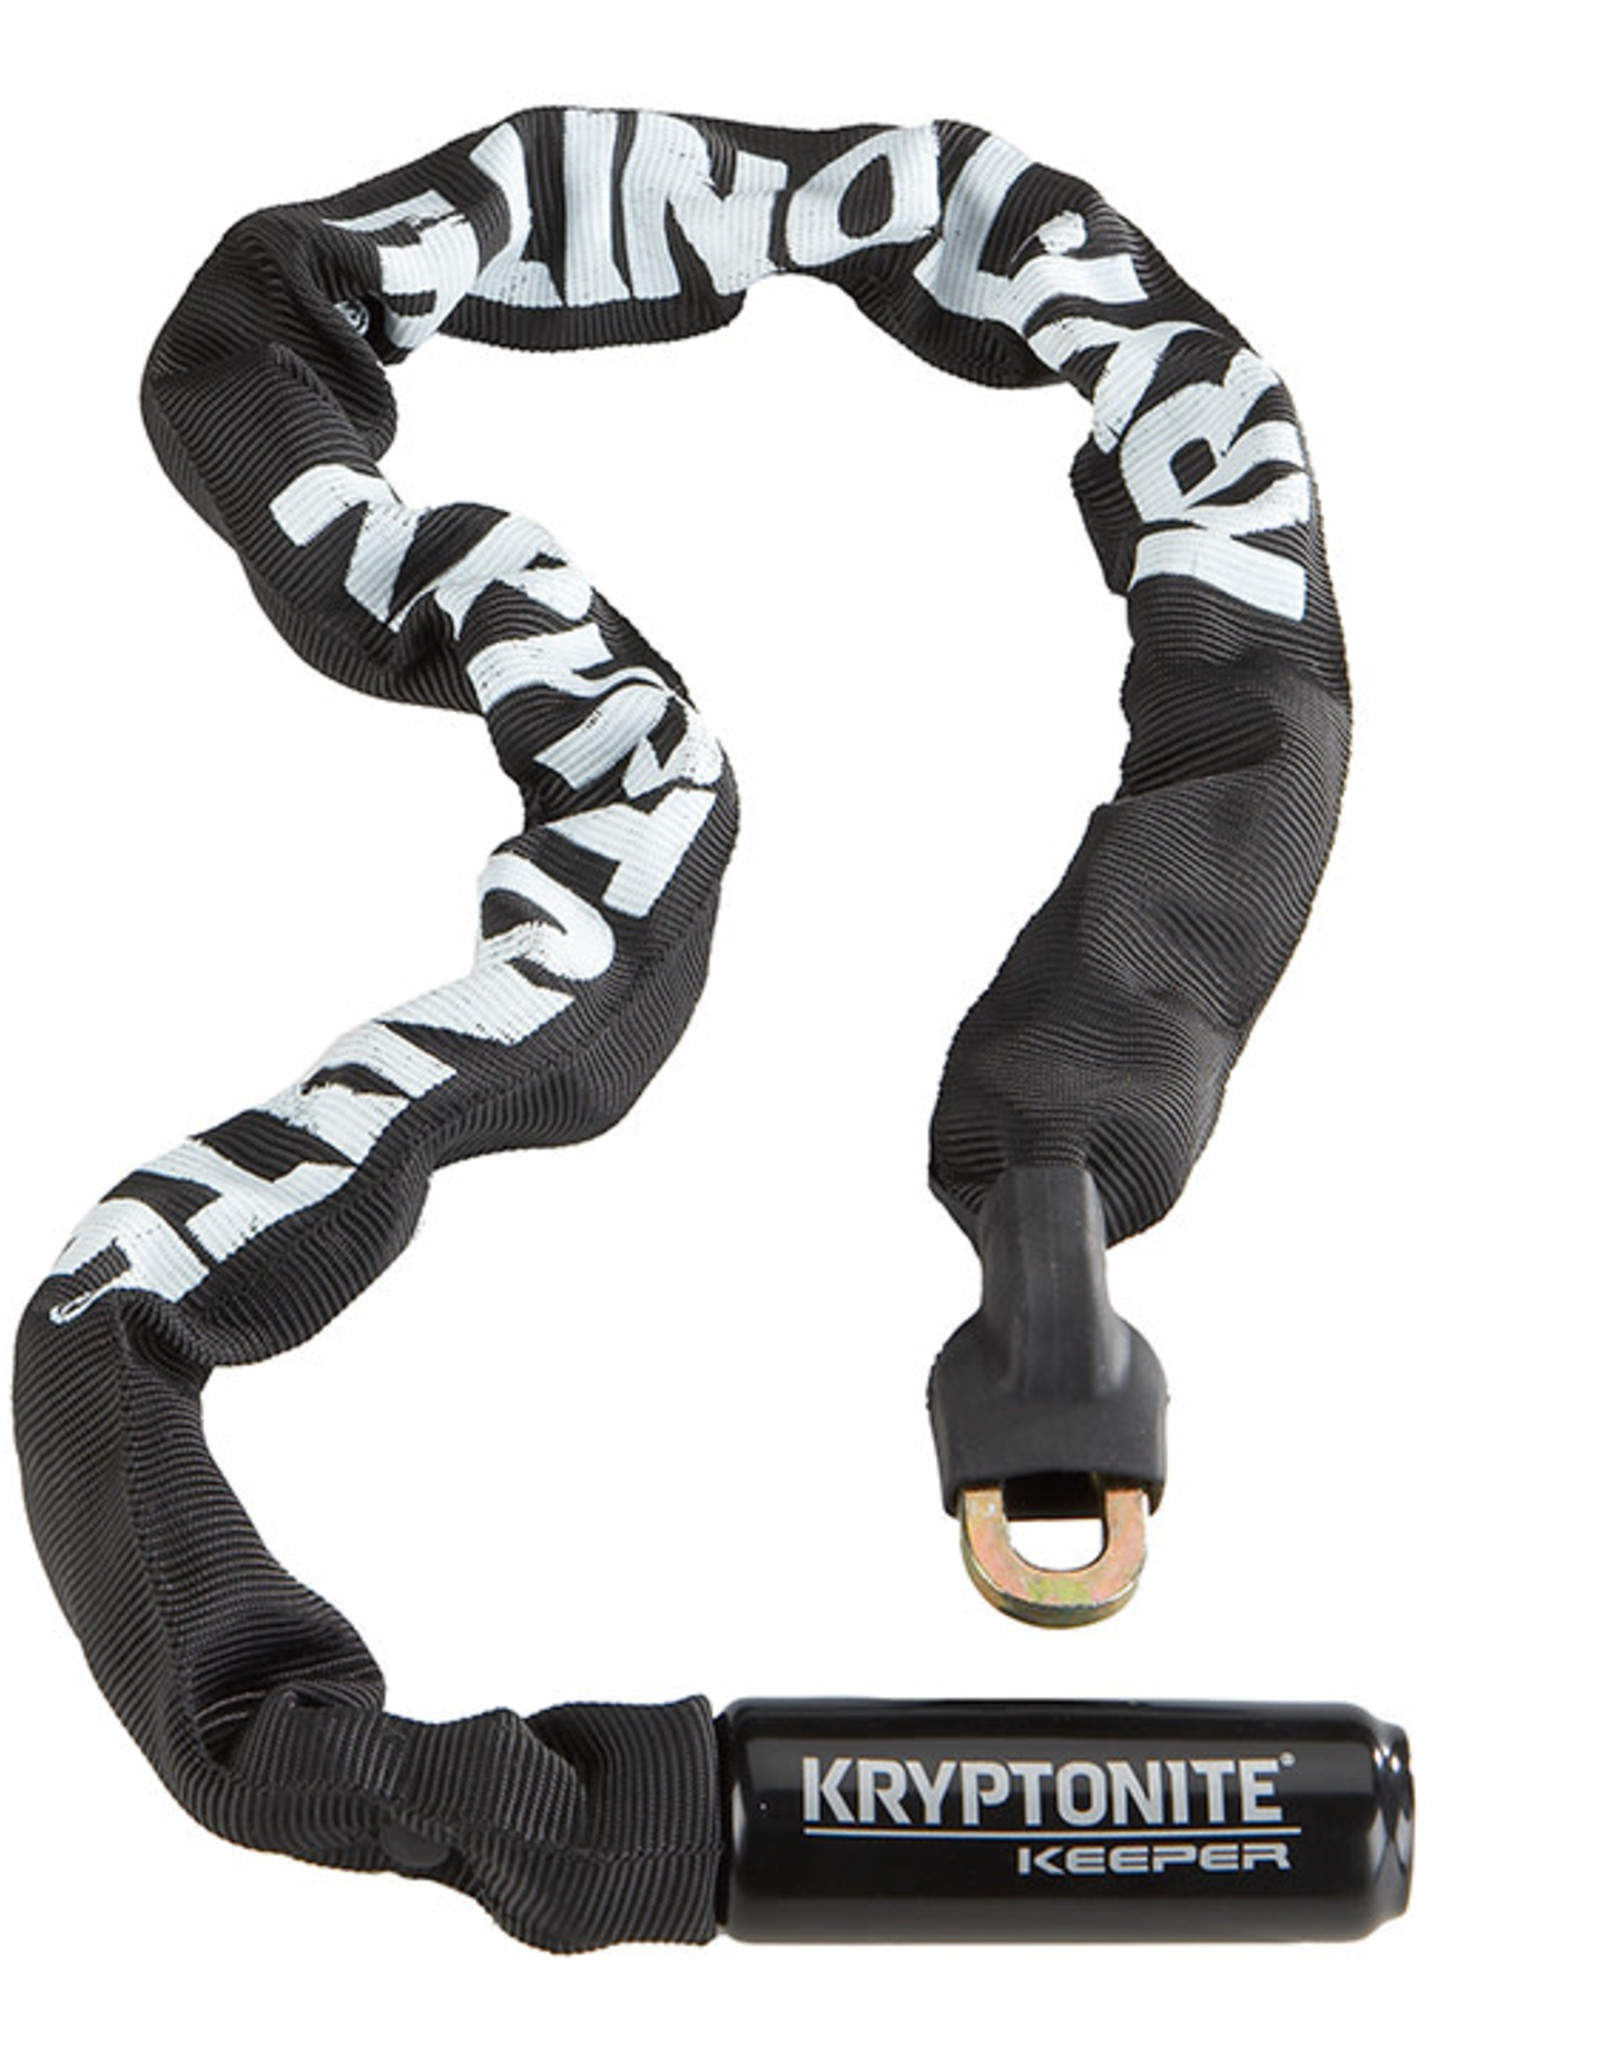 Kryptonite Kryptonite Keeper 785 Lock